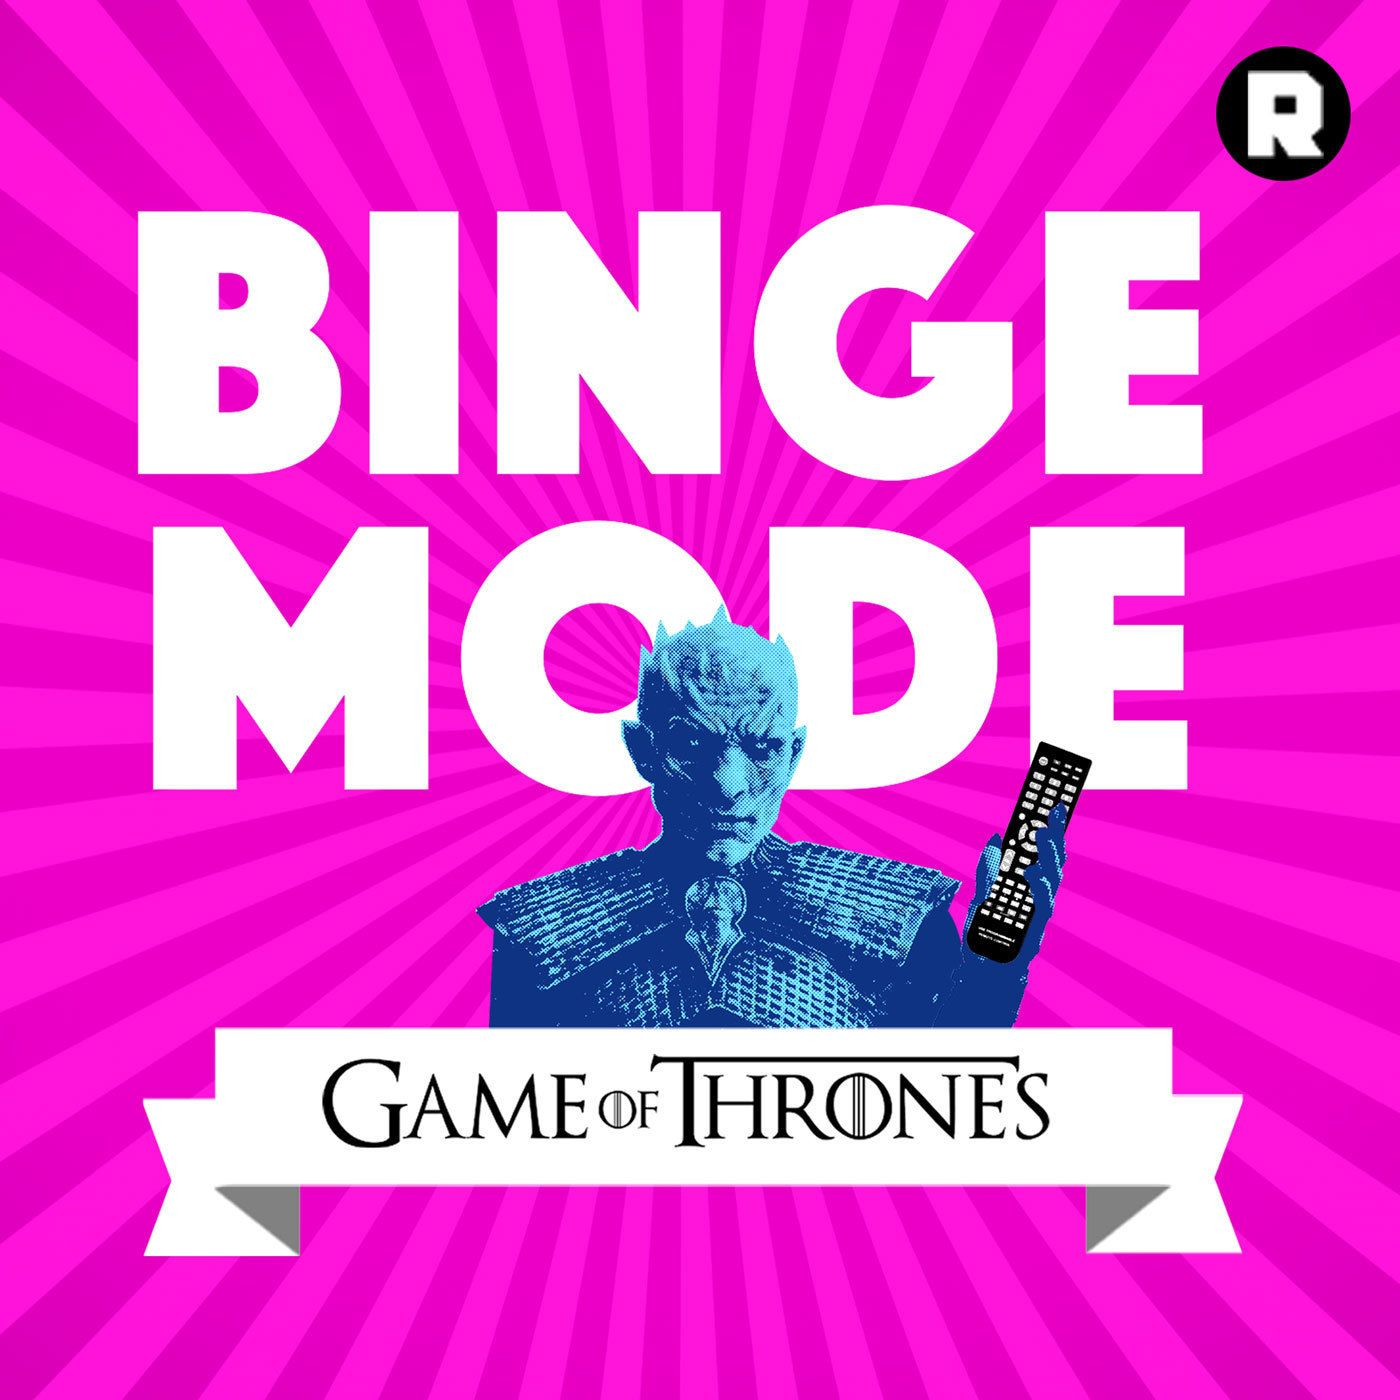 S1E6: A Golden Crown | Game of Thrones